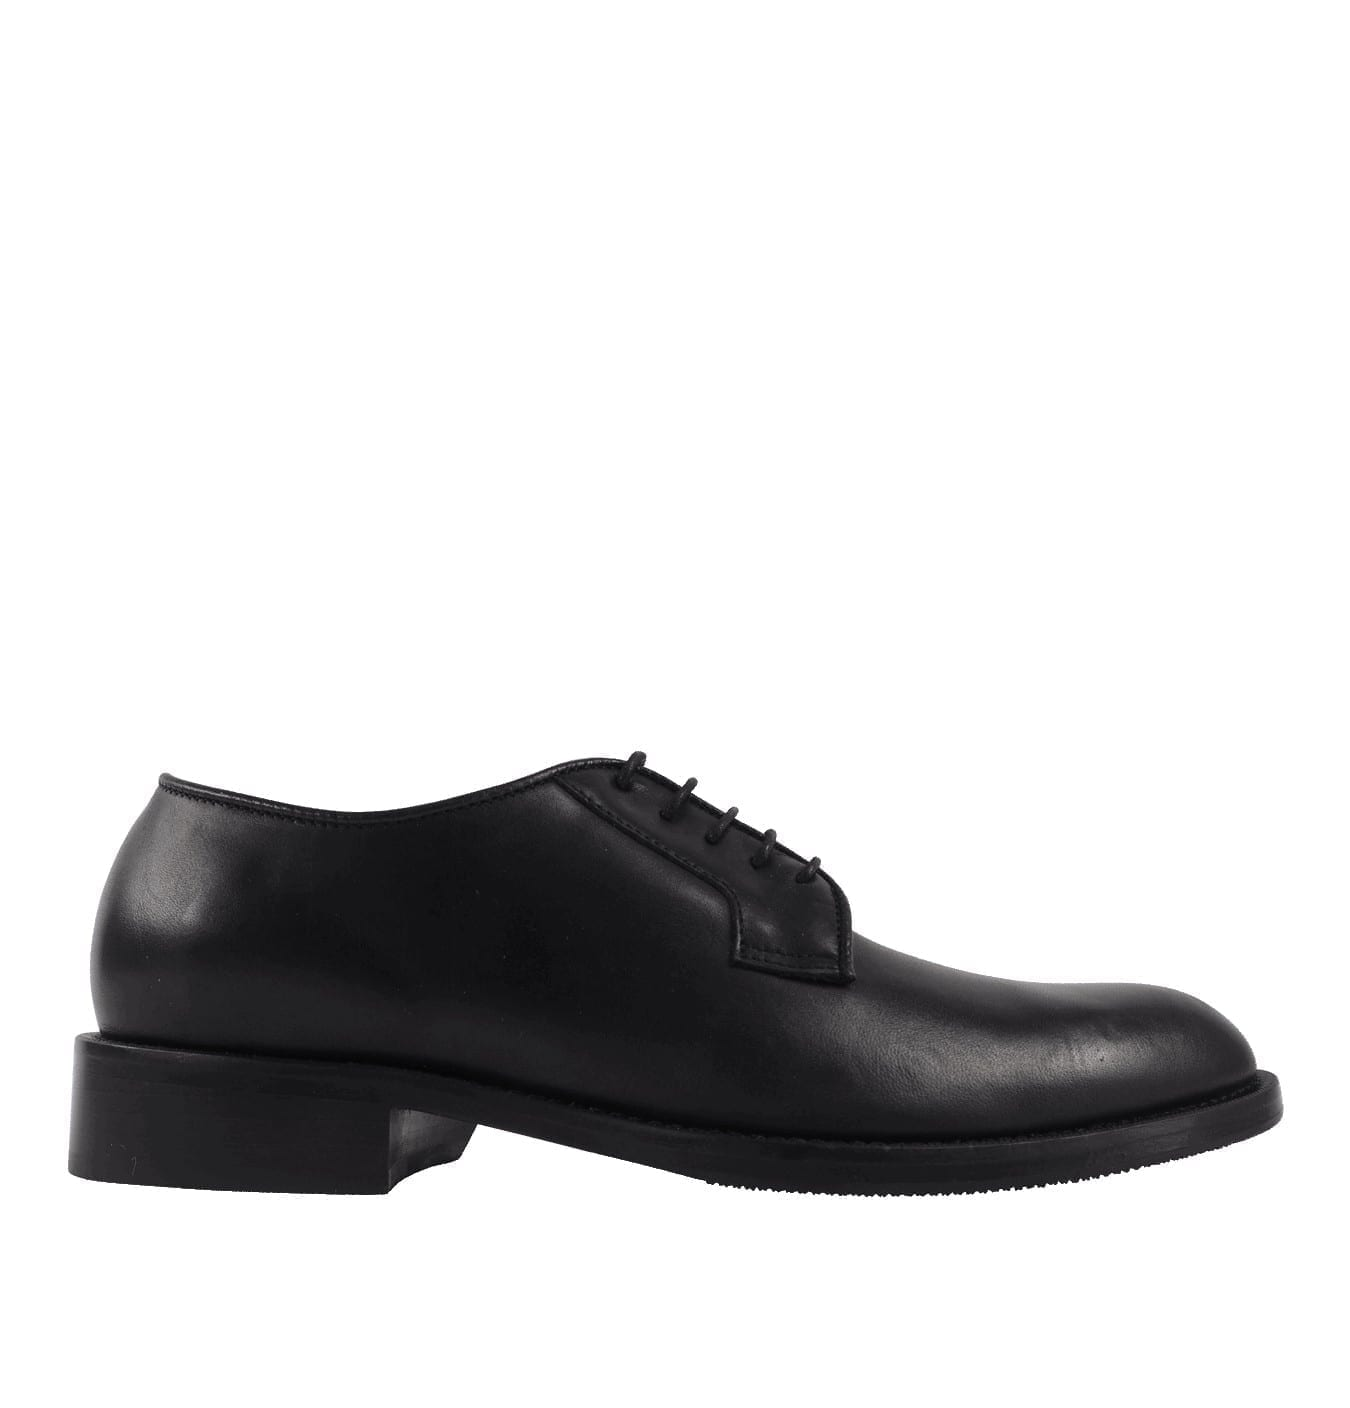 Image of Agaton Leather Shoe Black